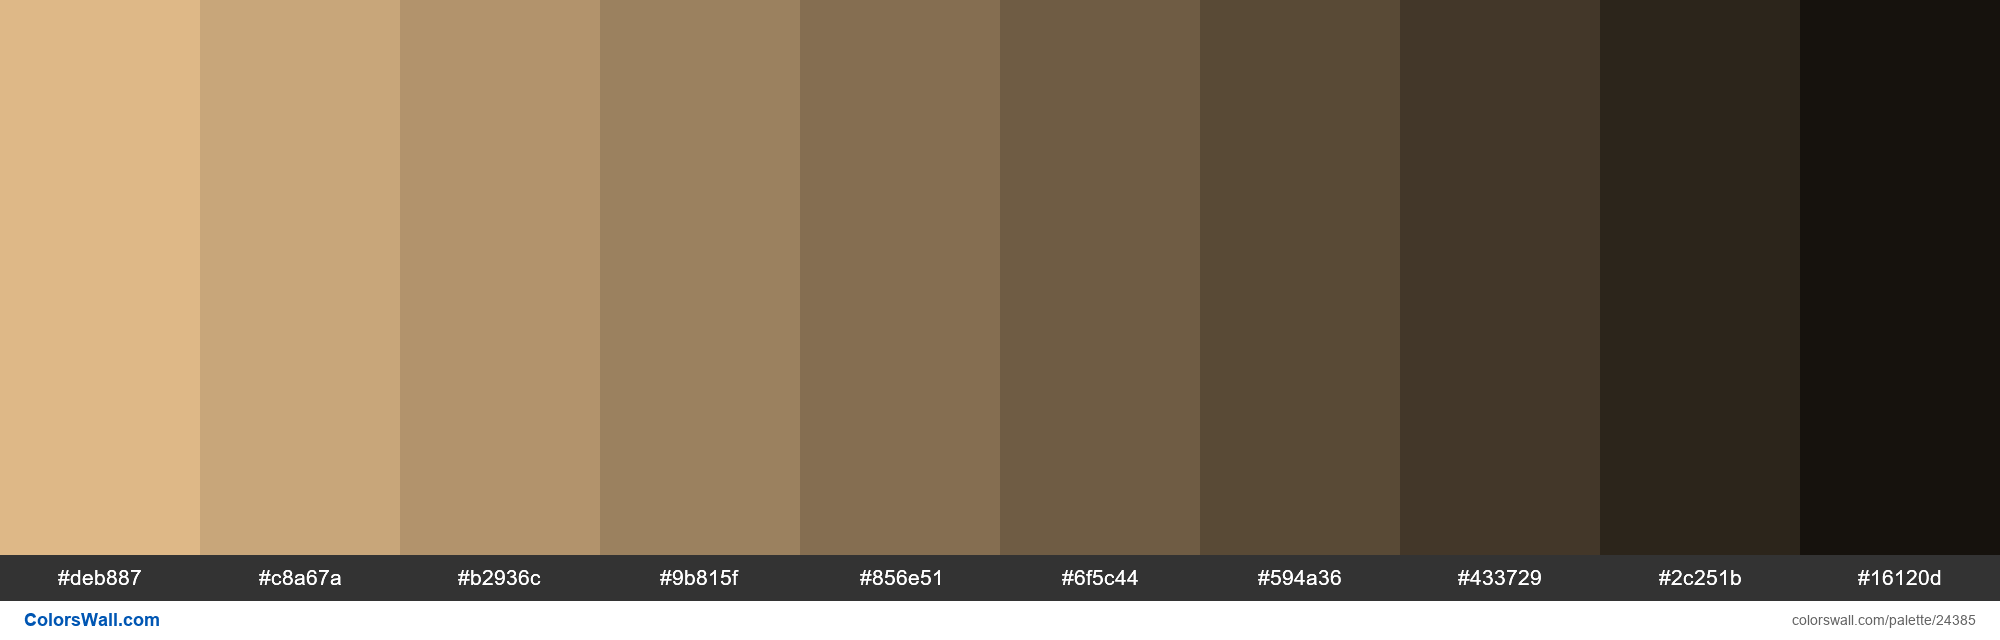 Shades of Burly Wood #DEB887 hex color - #24385